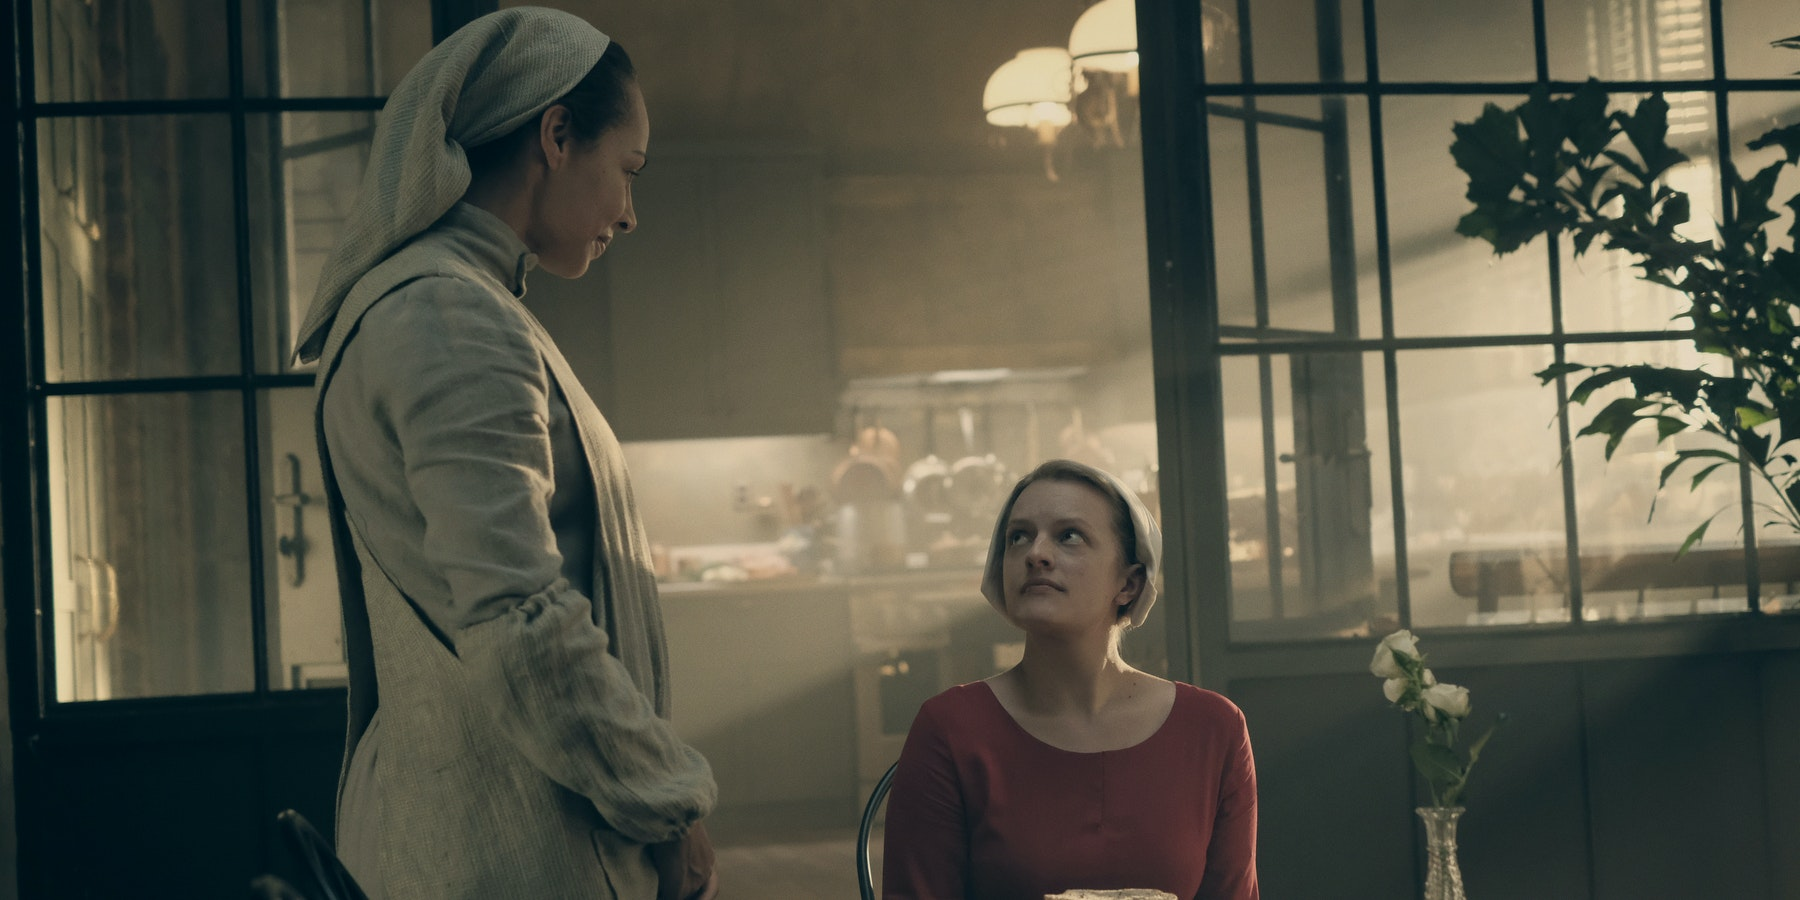 little women and the handmaid s tale David miller oppression on women in margaret atwood's the handmaid's tale and marjane satrapi's persepolis marjane satrapi, in persepolis writes about a memoir of a little girl growing in iran.